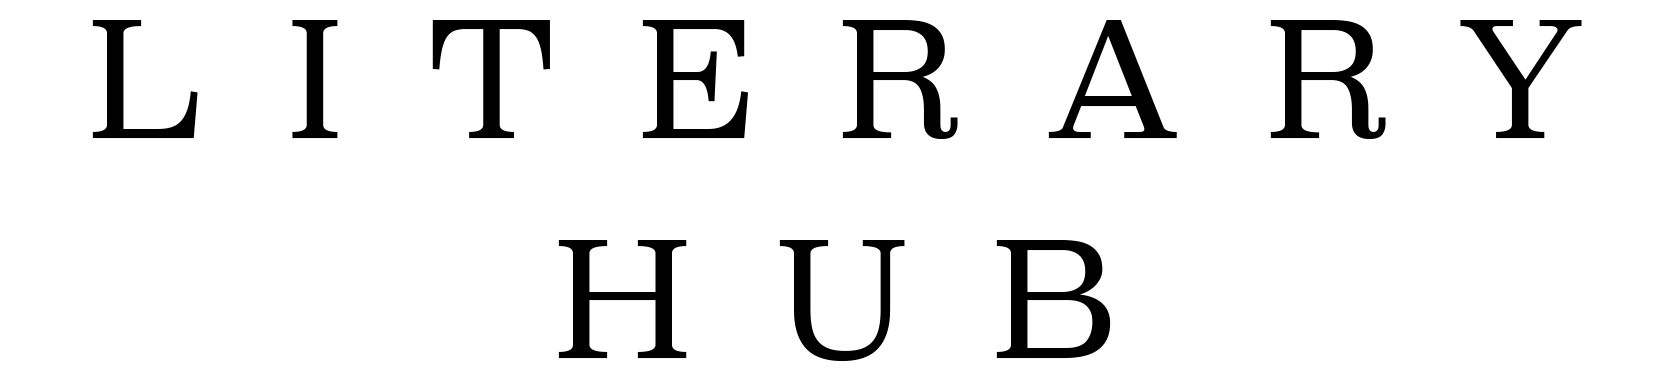 News outlet logo for favicons/lithub.com.png